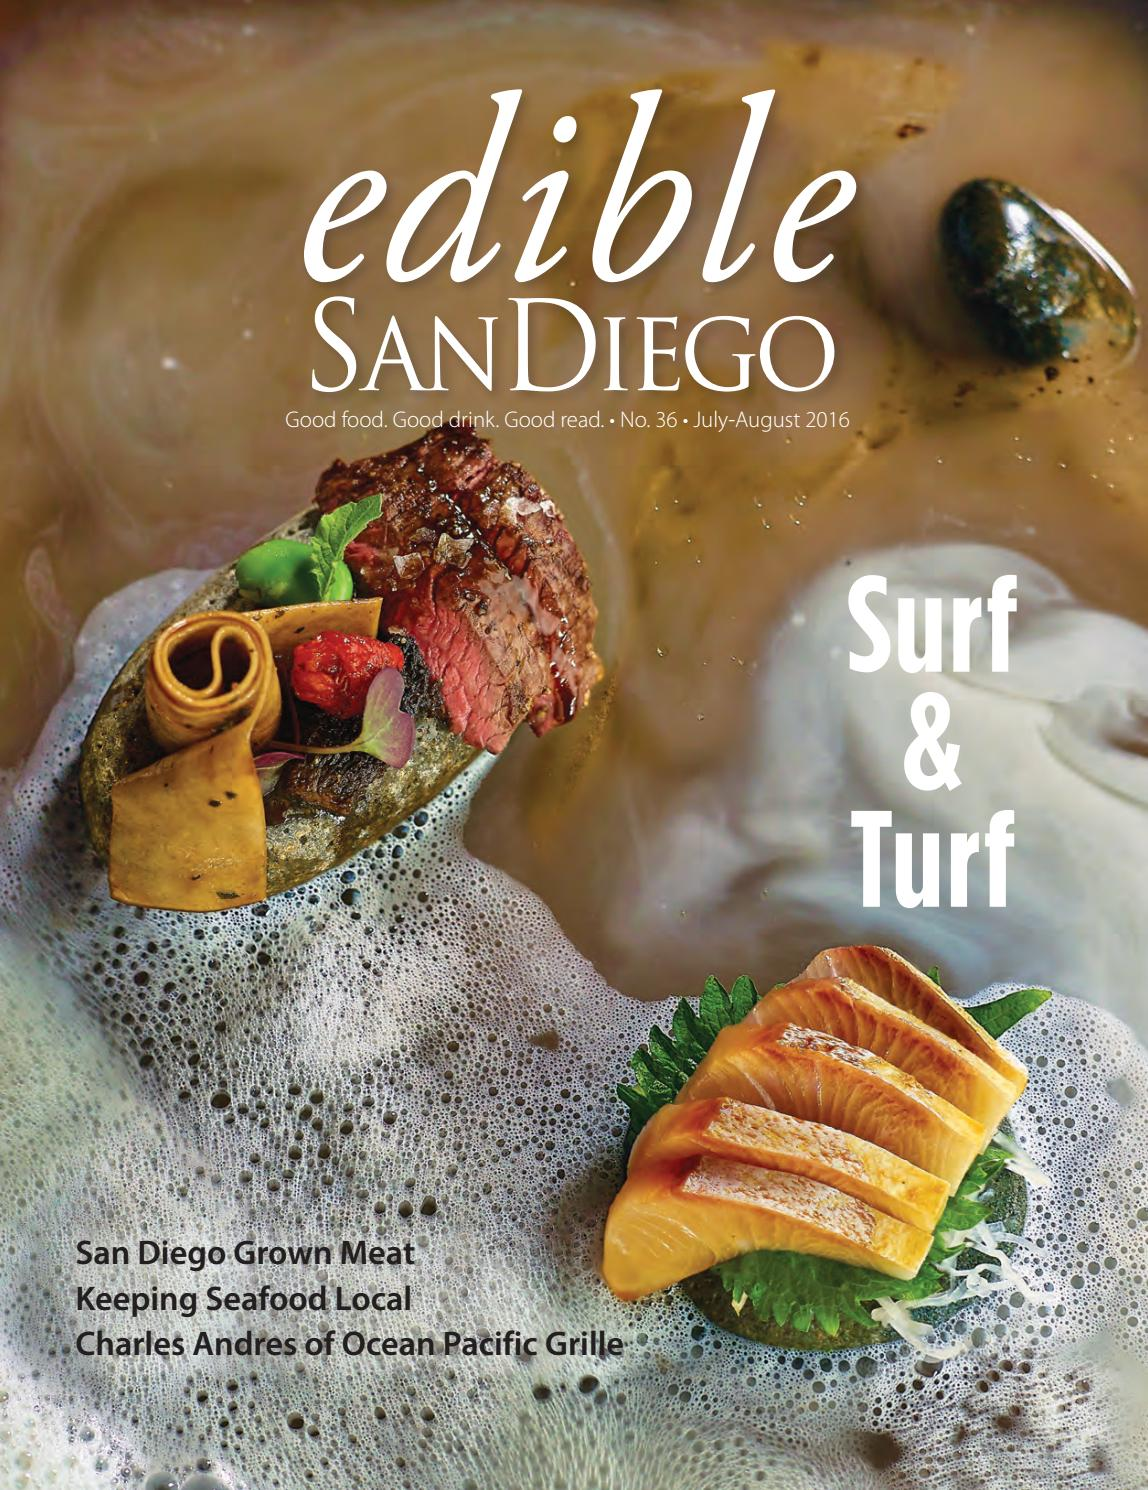 Edible San Diego Spring 2014 Issue By Issuu Bay Area Meat Csa In Transition Chicken Recipes Esd 36 July August 2016